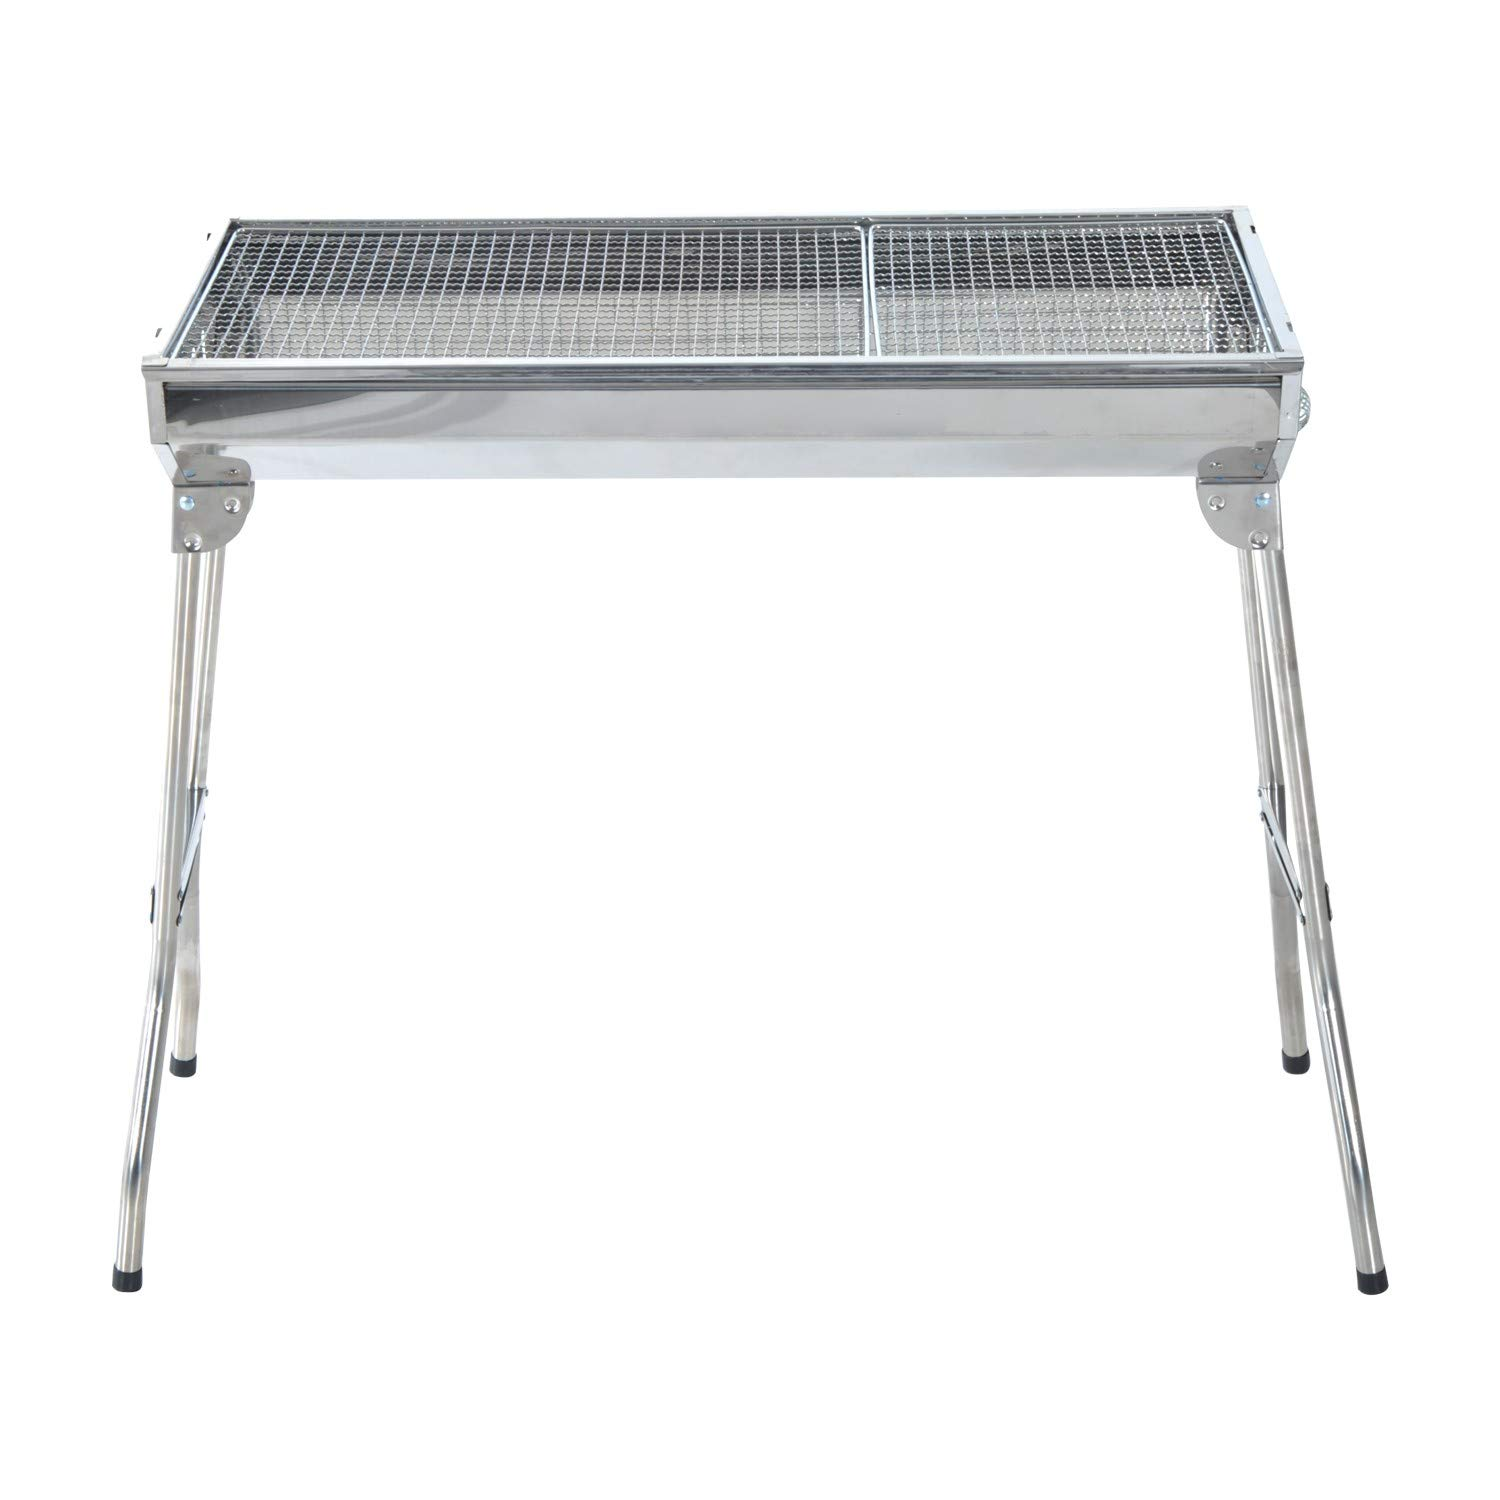 DoitY 35 Inch Stainless Steel Portable Folding Charcoal BBQ Grill